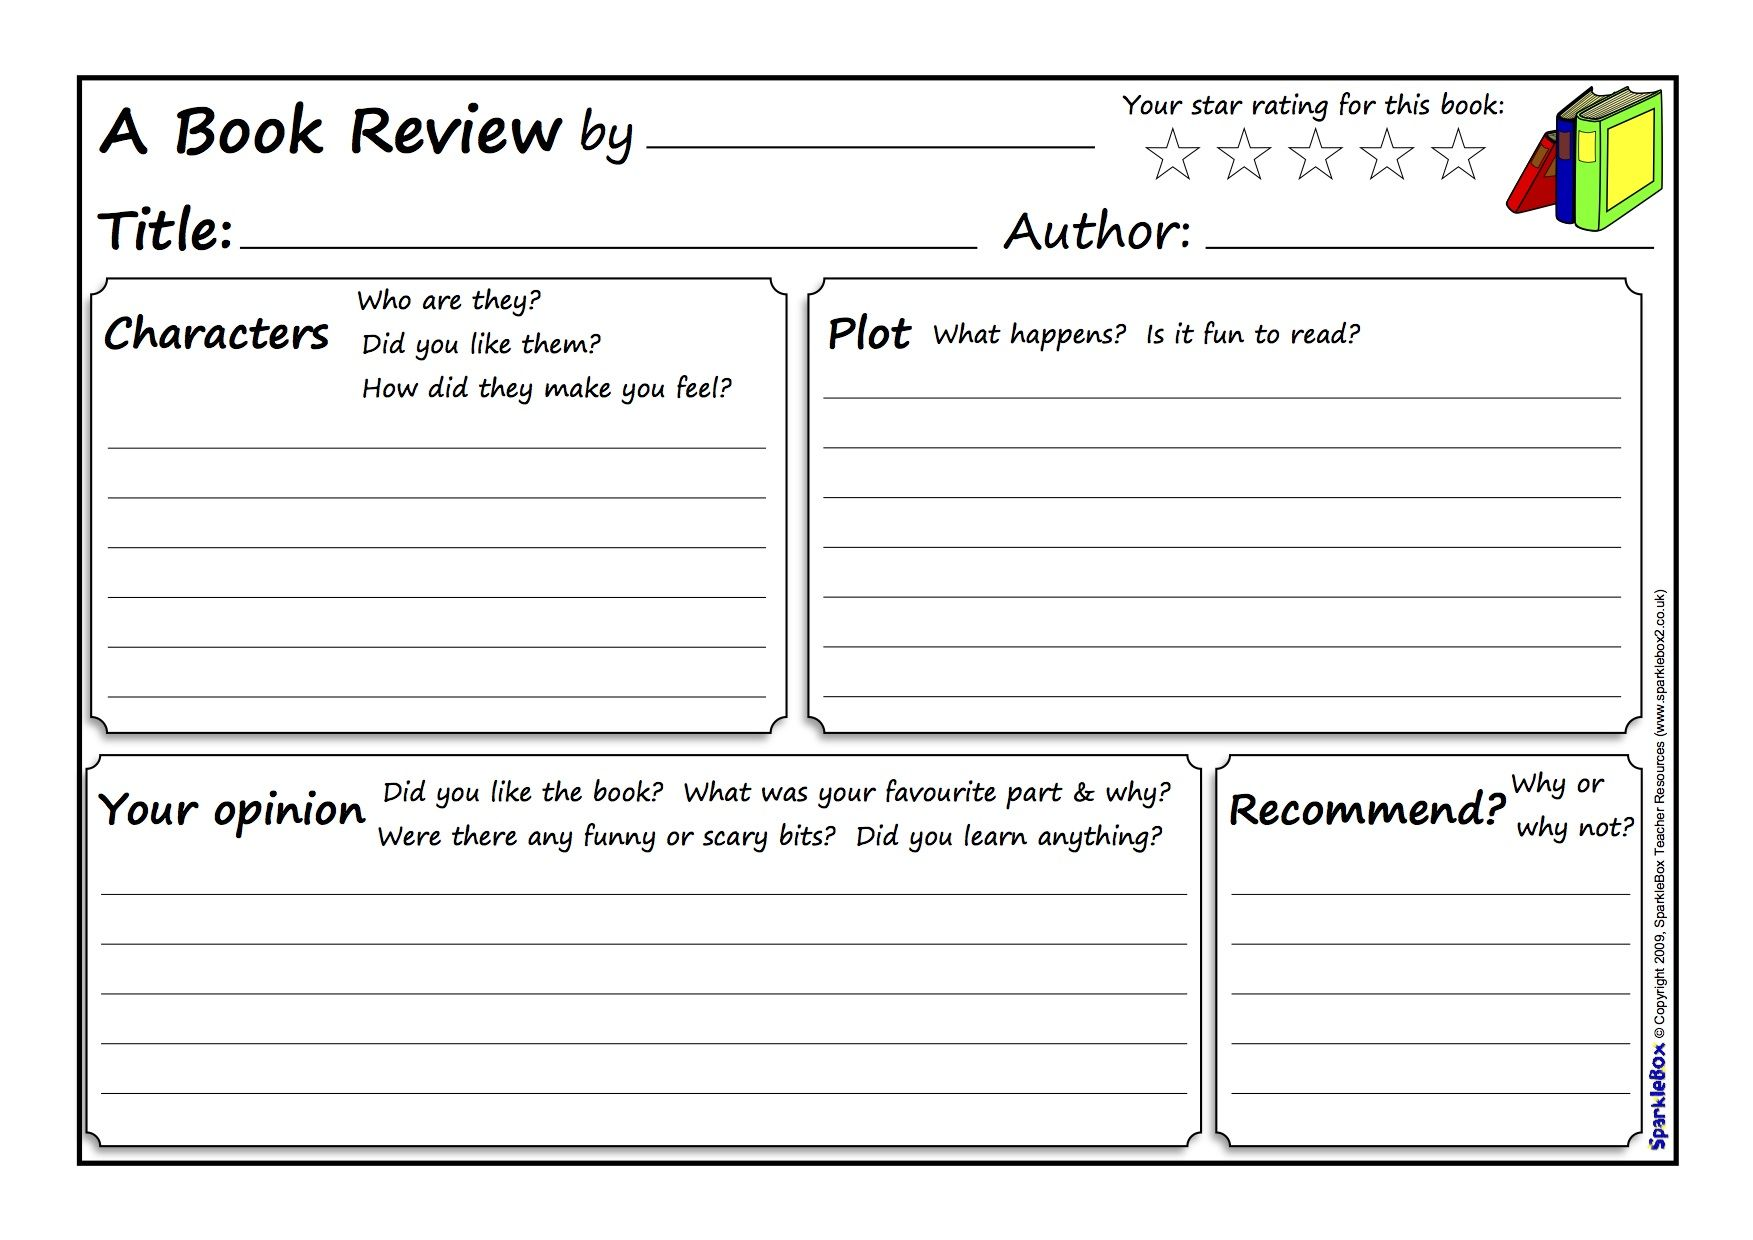 Great book review template! … | Reading …